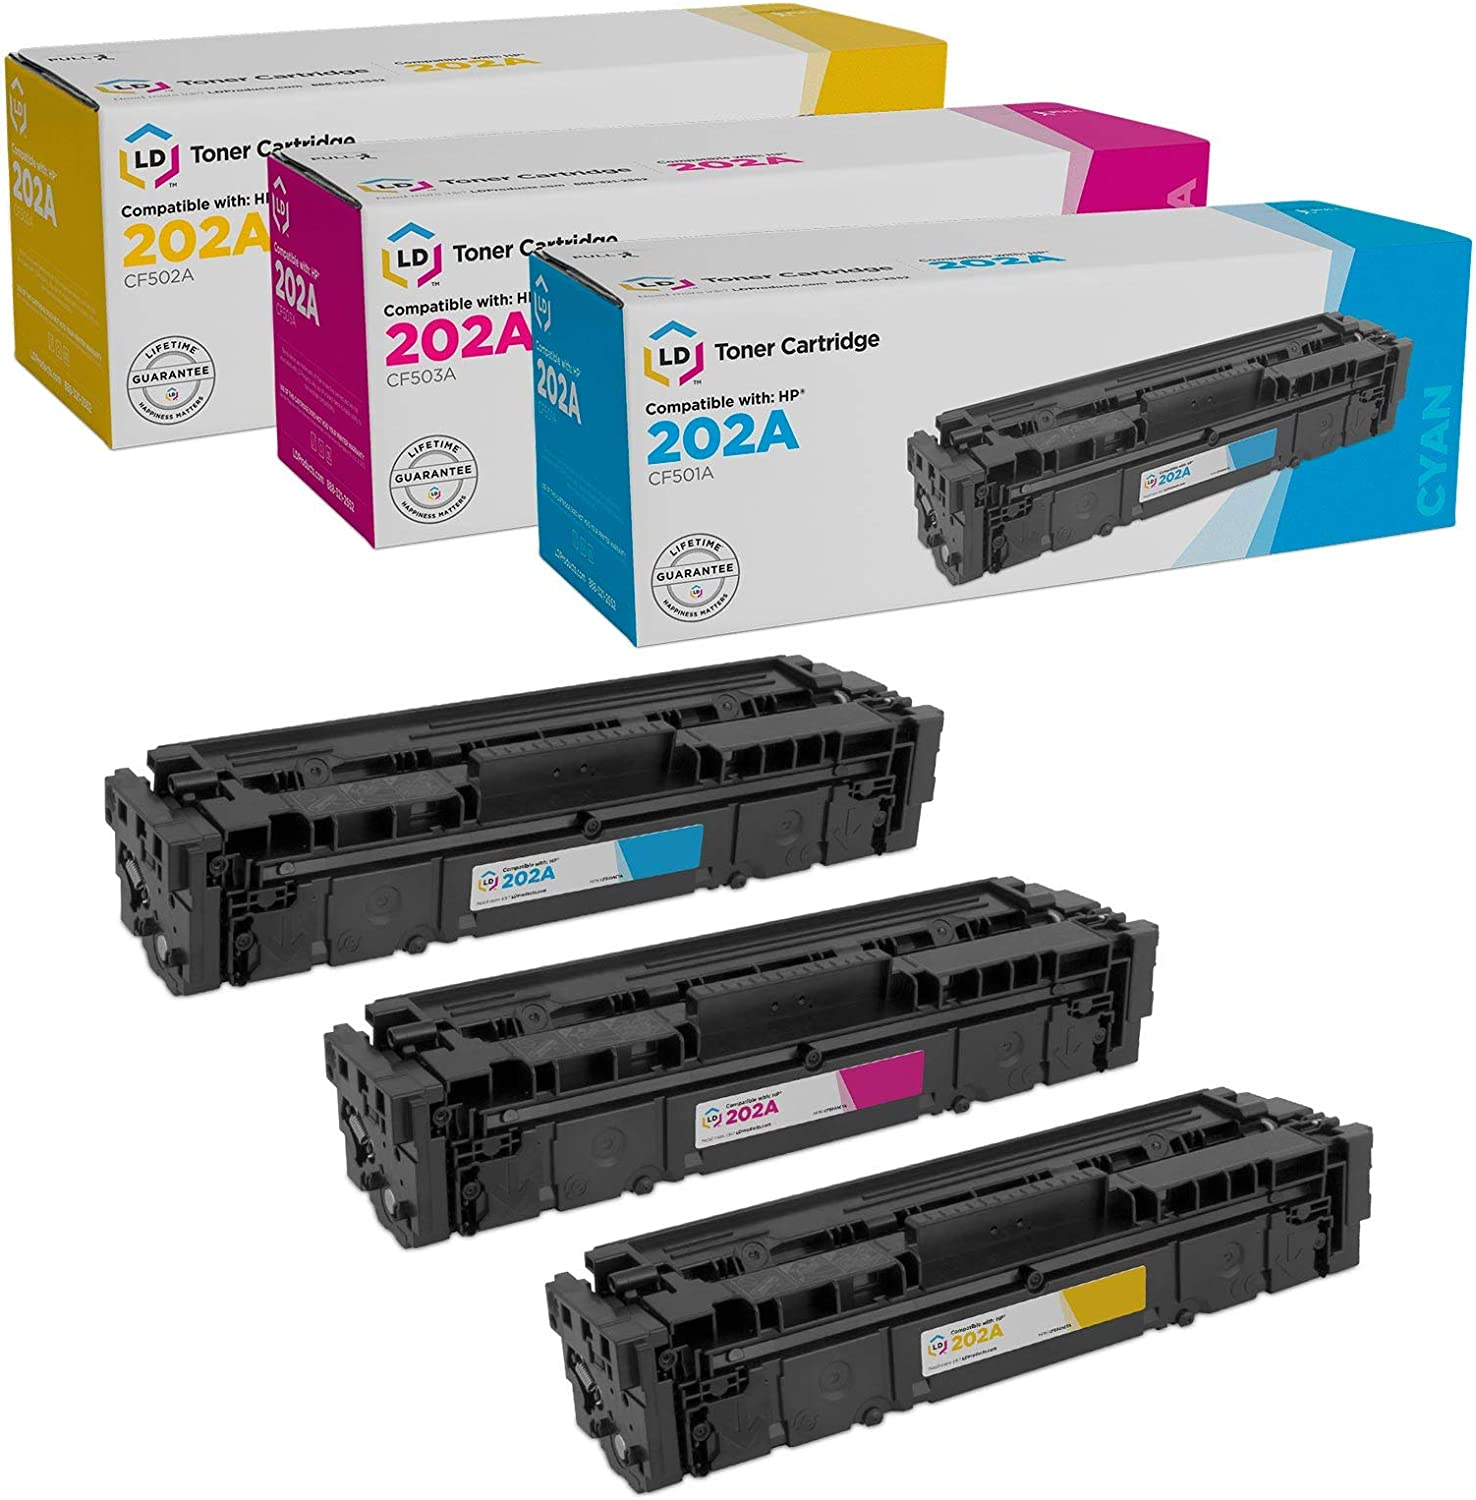 LD Compatible Toner Cartridge Replacements for HP 202X High Yield 1 Black, 1 Cyan, 1 Magenta, 1 Yellow, 4-Pack